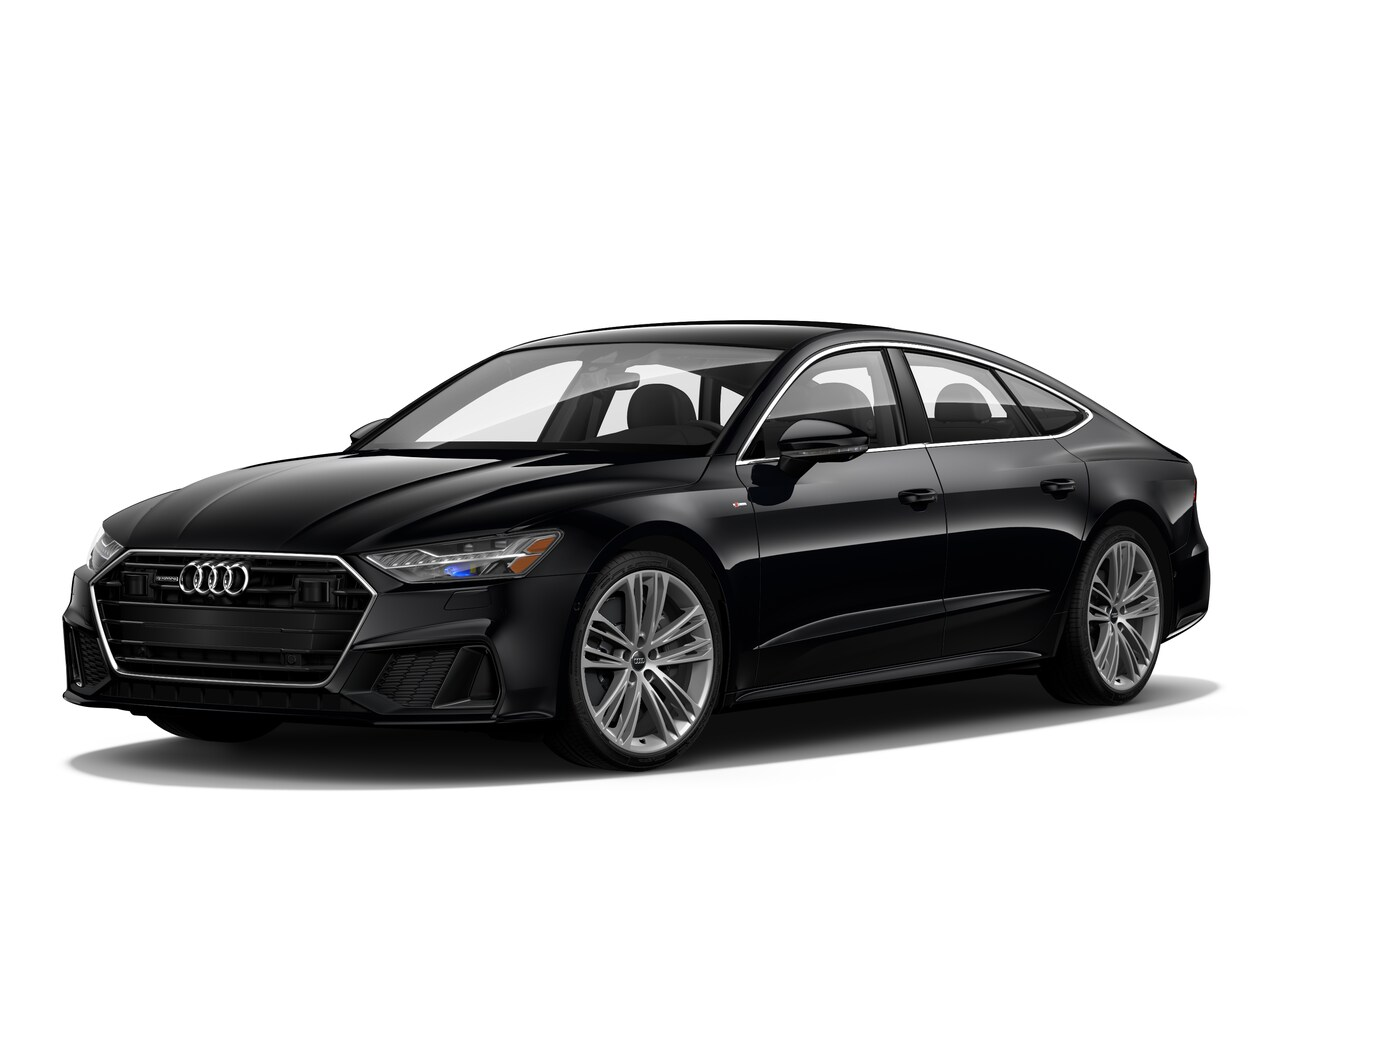 2020 Audi A7 Ultimate Luxury Vehicle Available Soon in Bay City